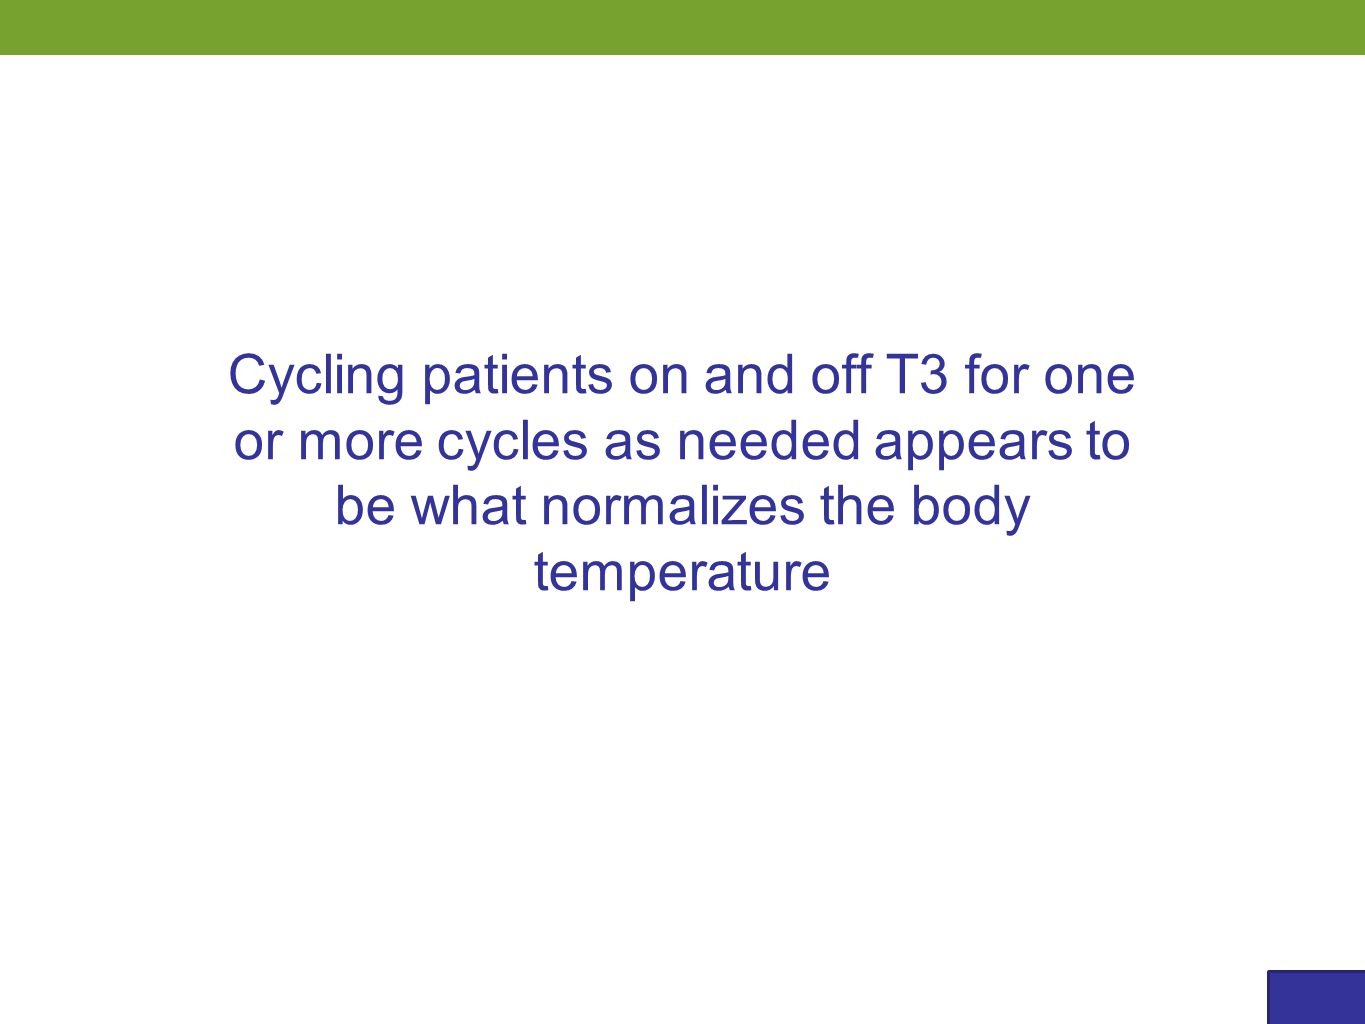 Cycling patients on and off T3 for one or more cycles as needed appears to be what normalizes the body temperature